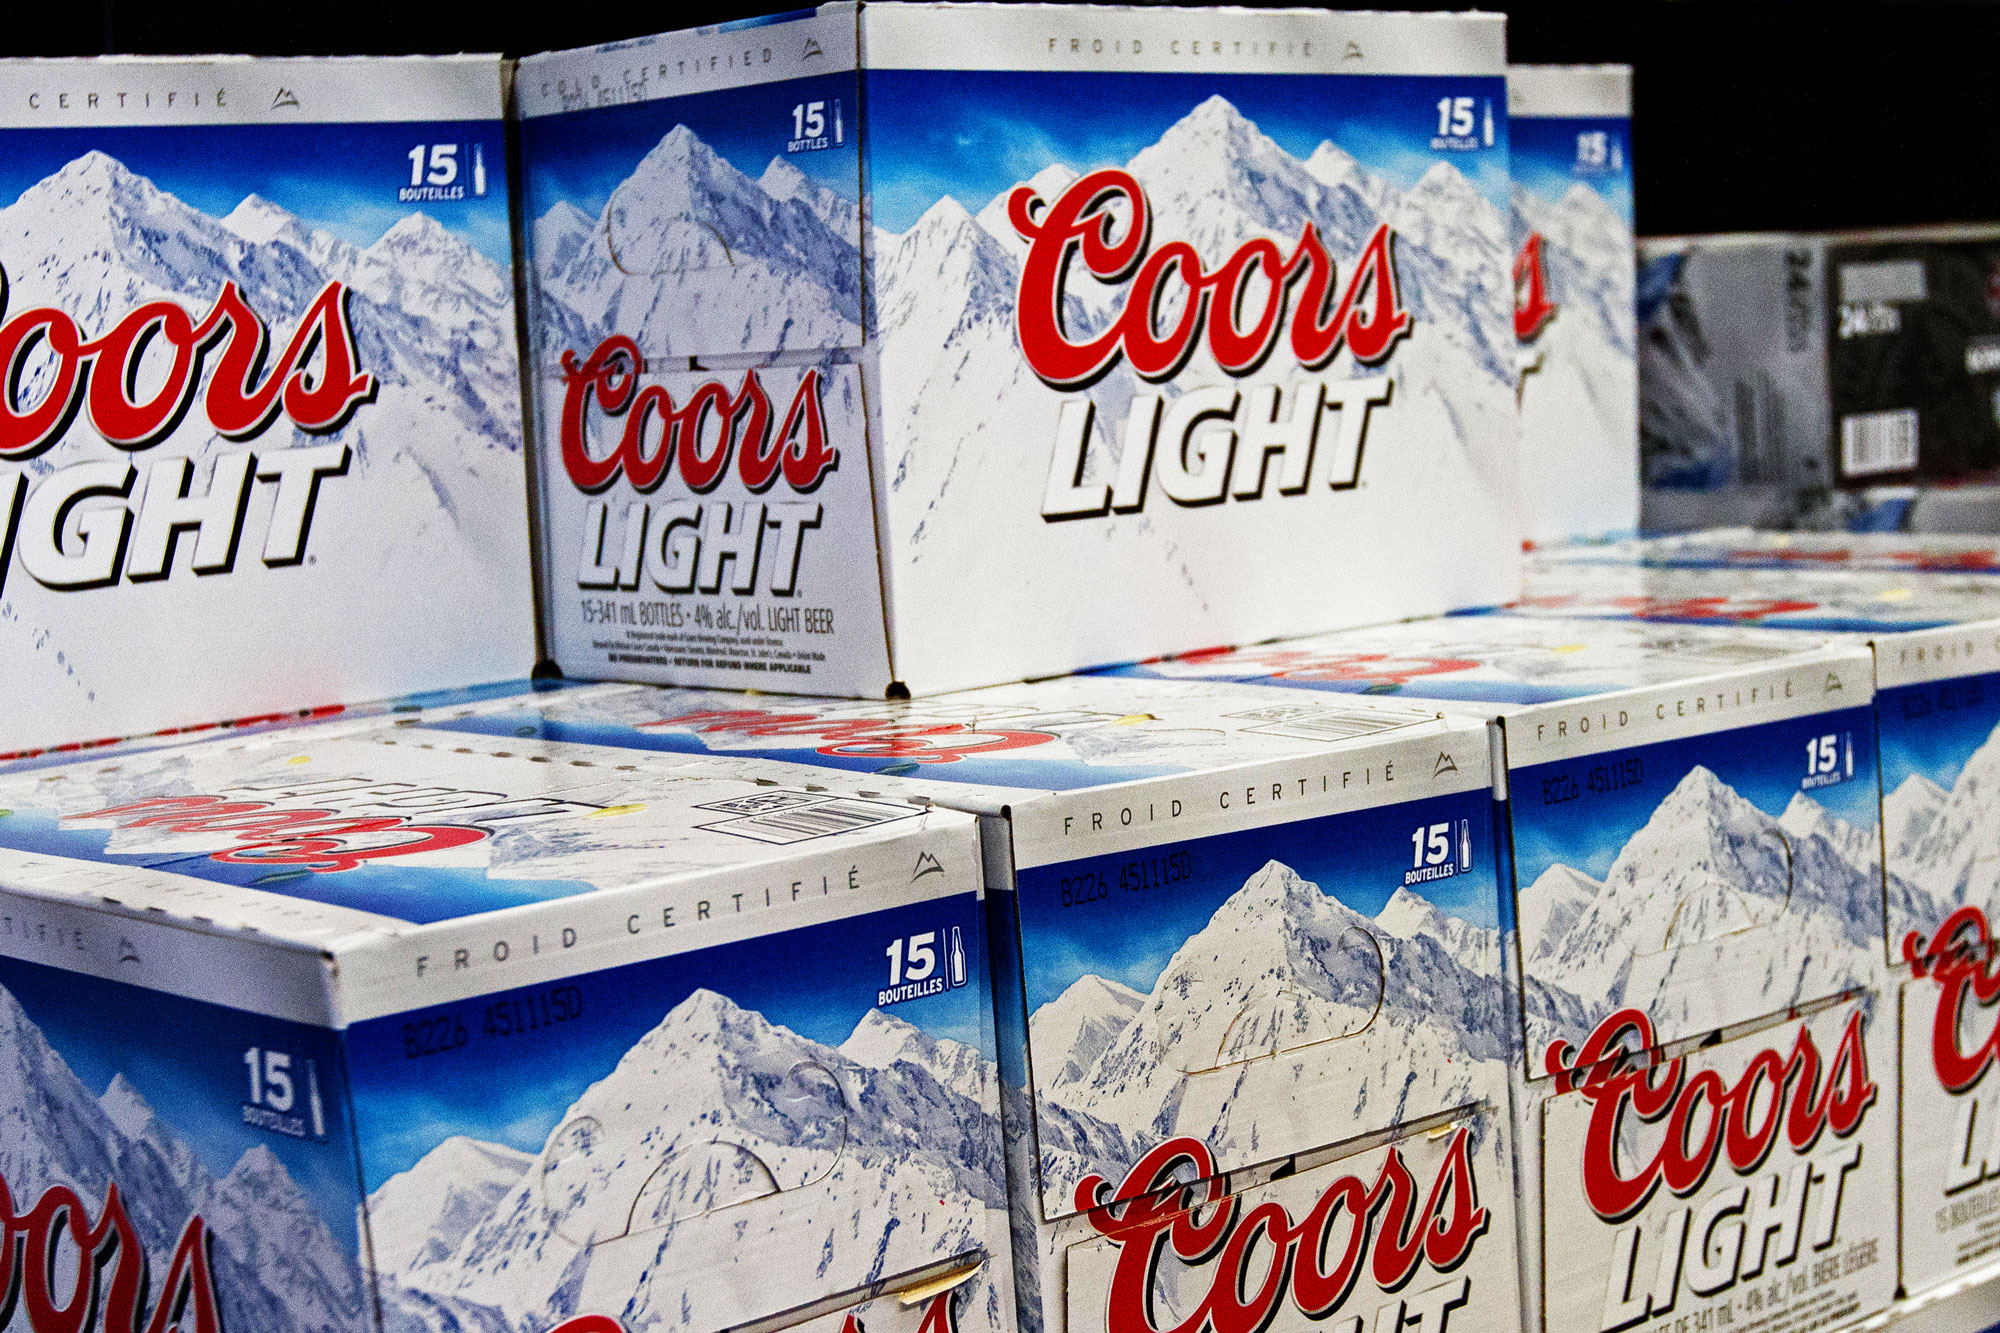 Coors Light beer cases on display in a store